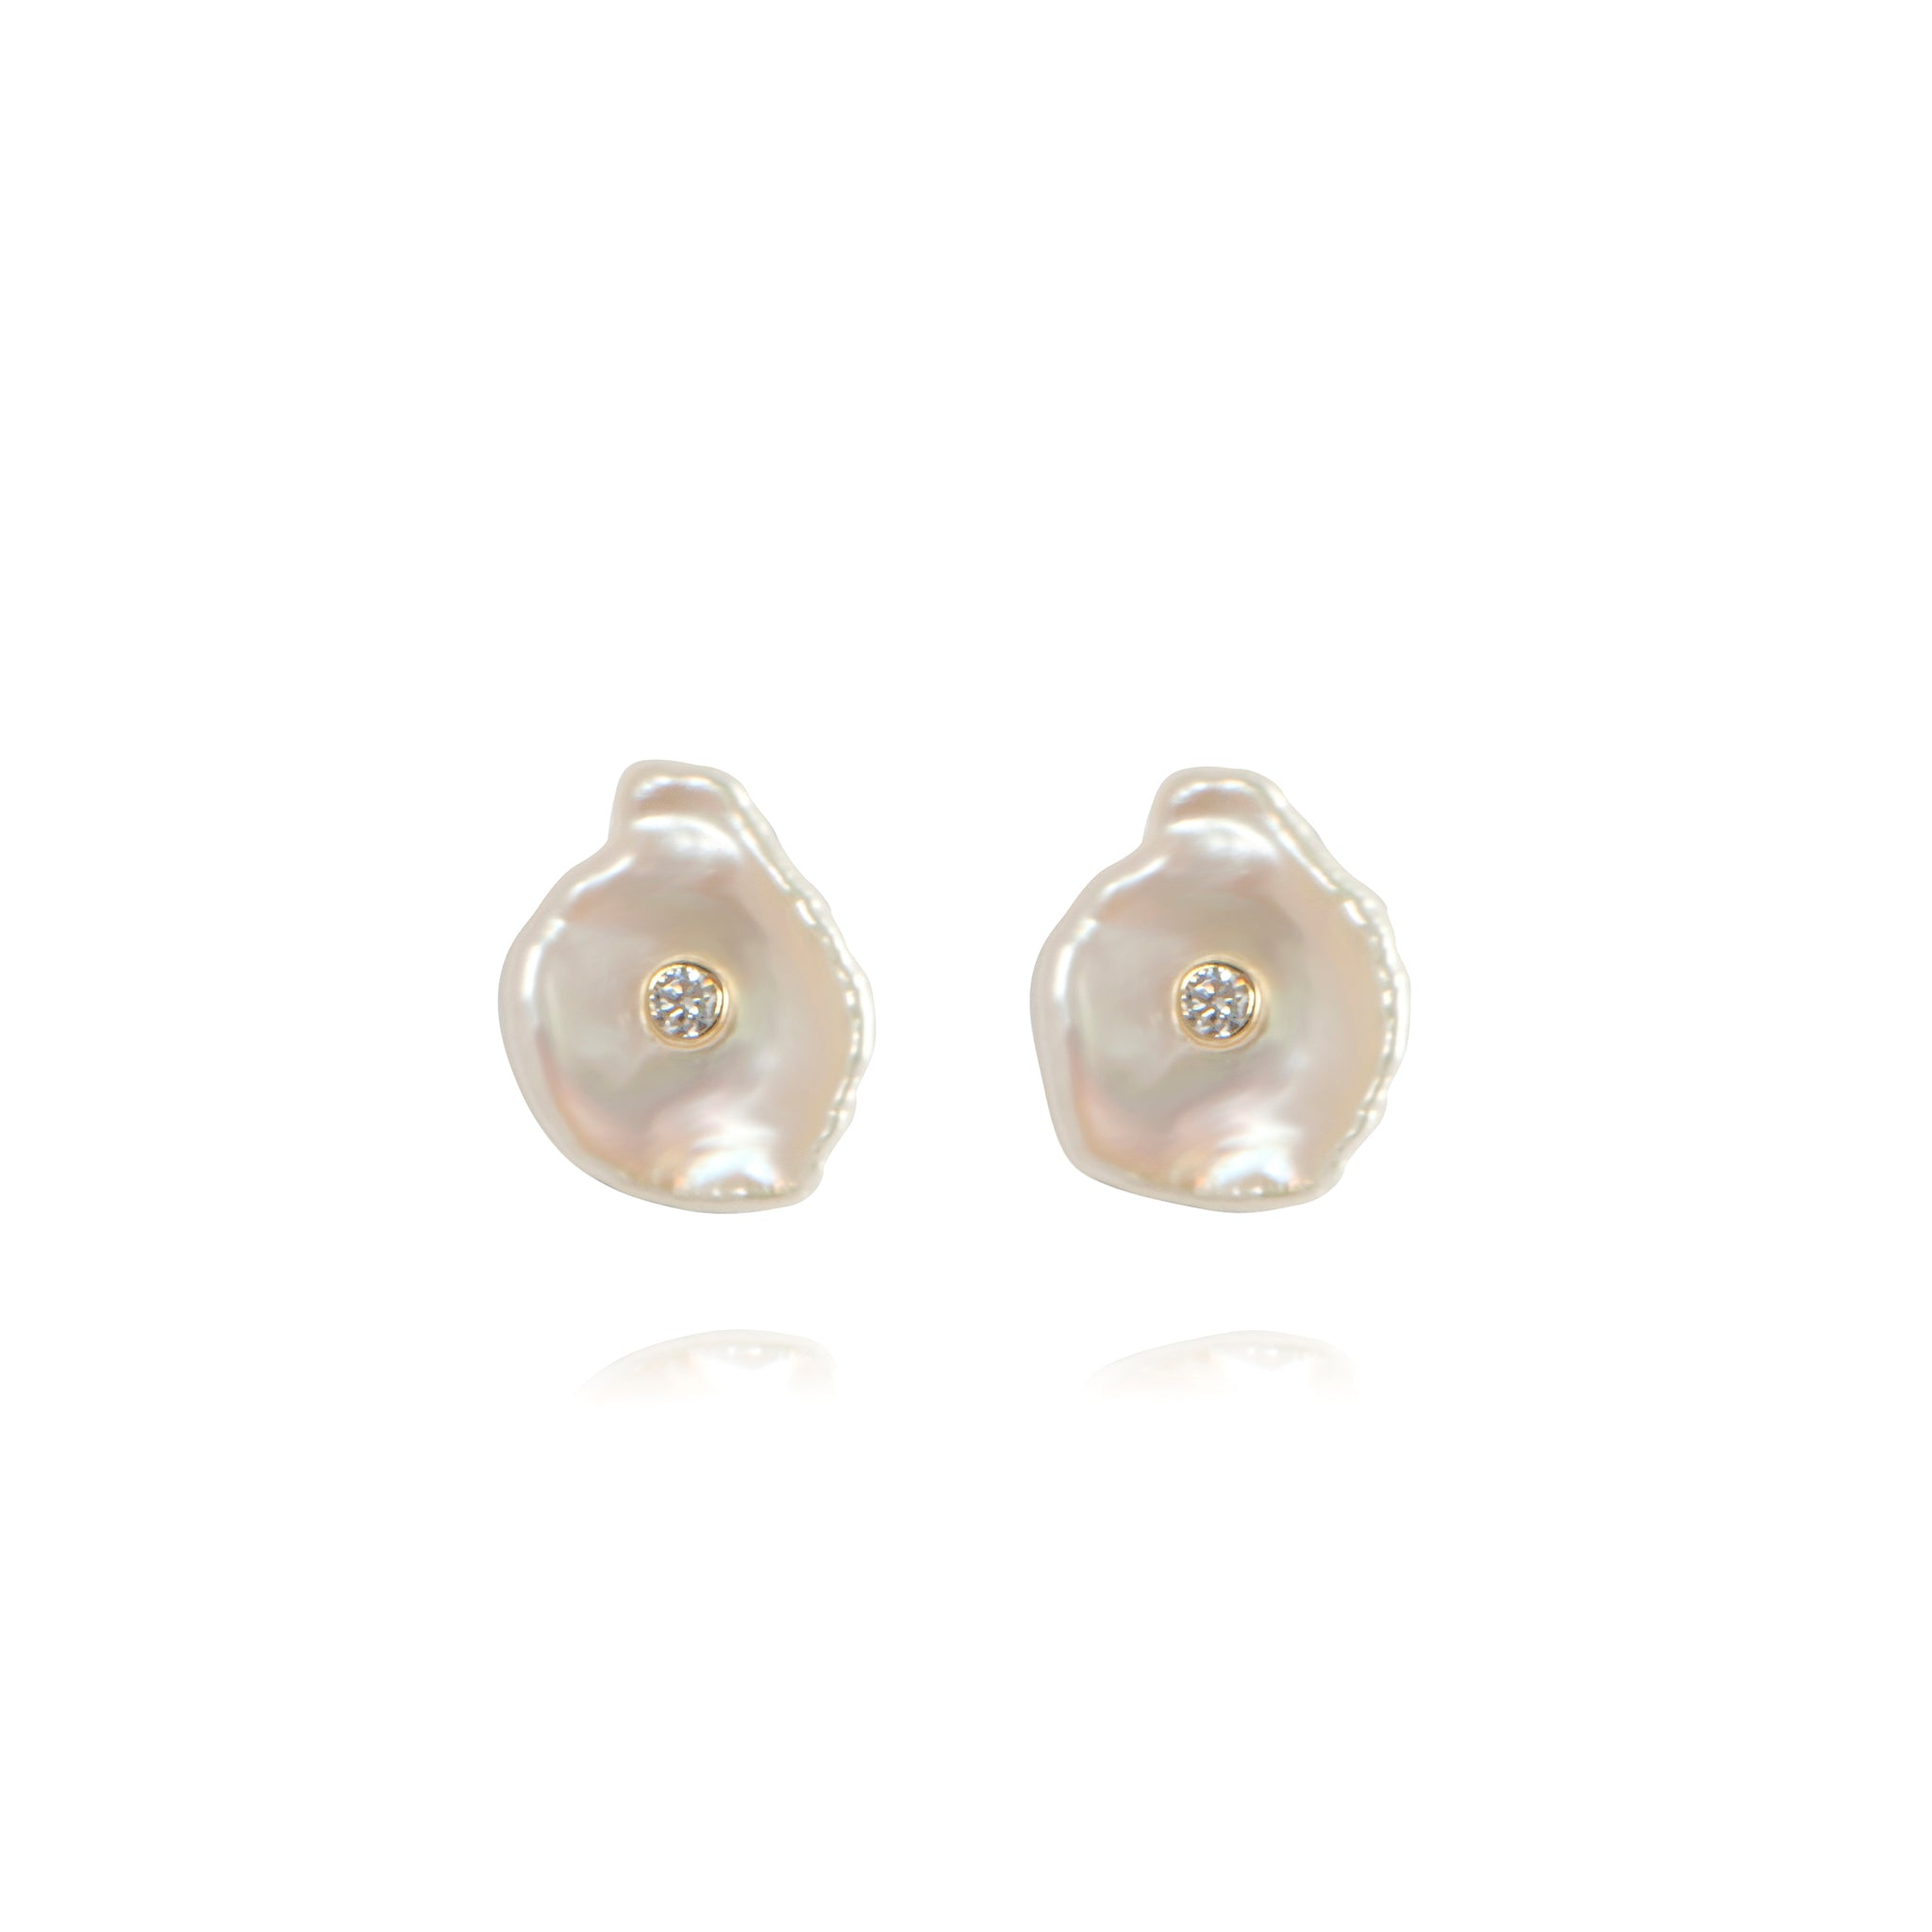 APPLES & FIGS - BAROQUE FOUNTAIN STUDS